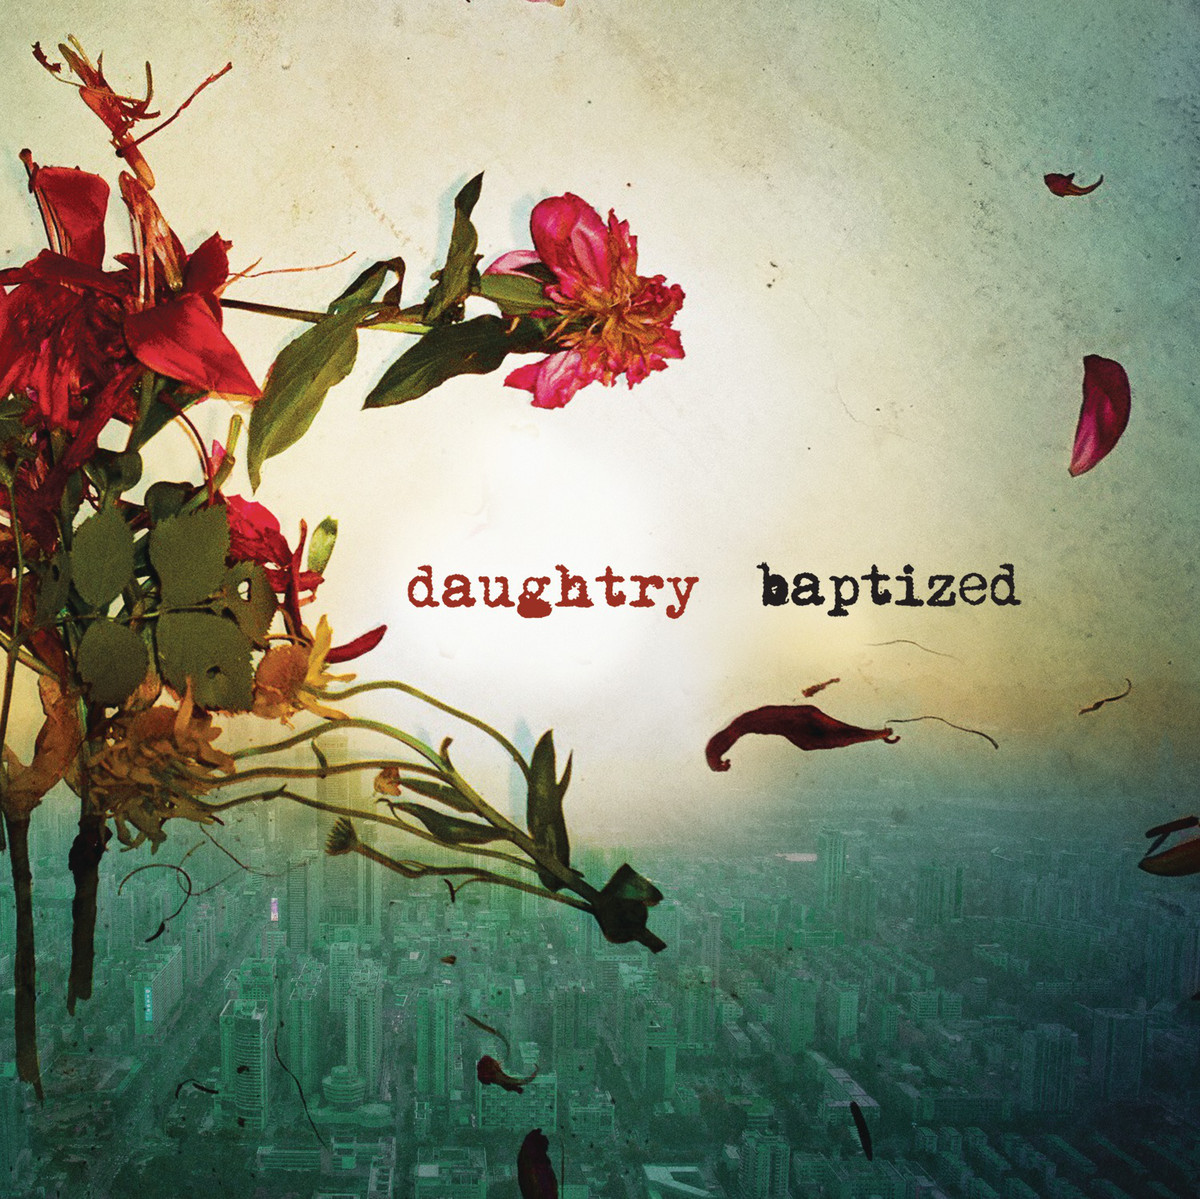 daughtry baptised 2013.jpg